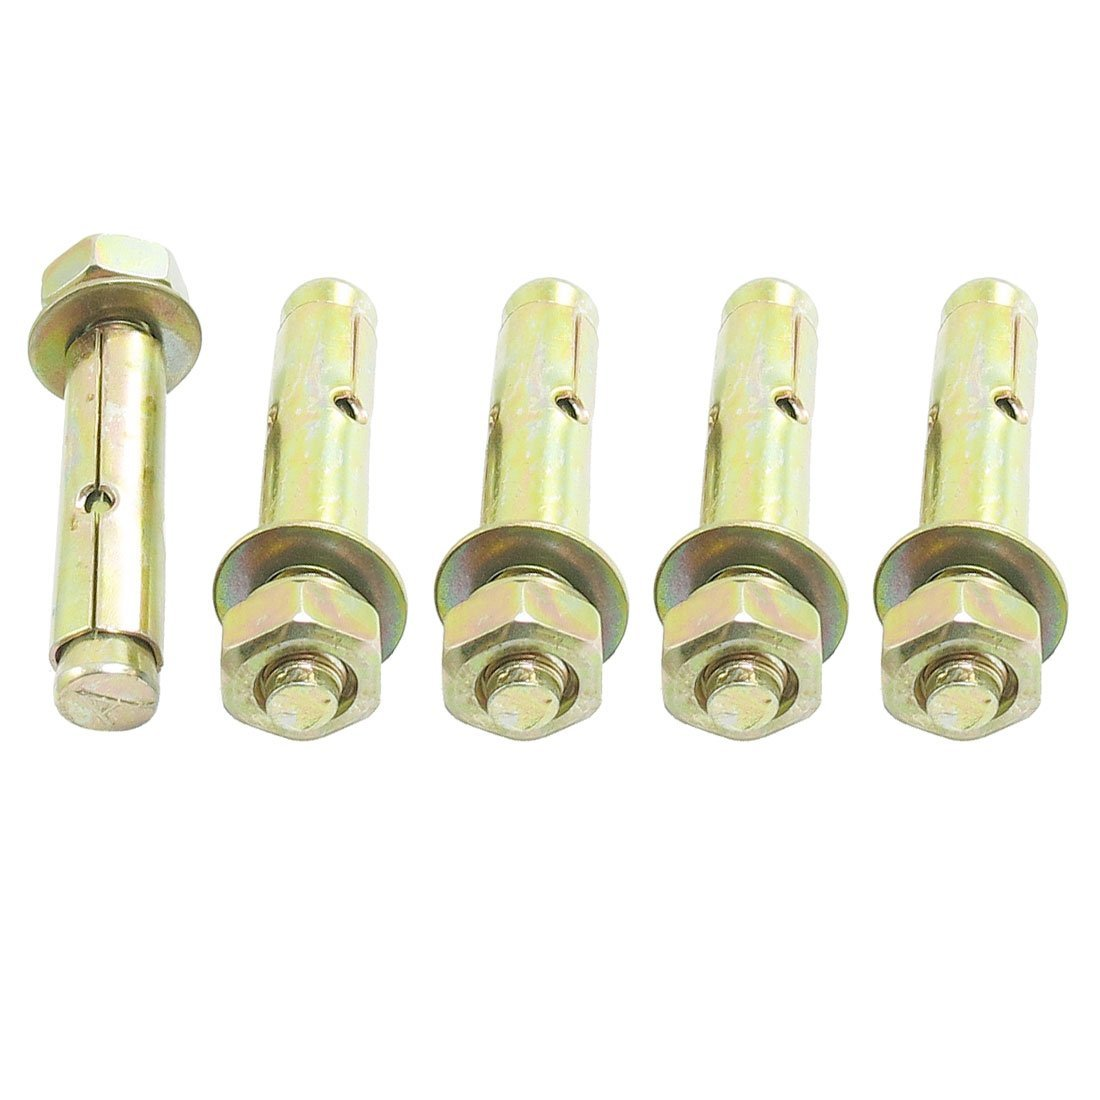 5 Pieces 70 mm M10 Hexagonal nut Expansion Bolt Anchor Tool